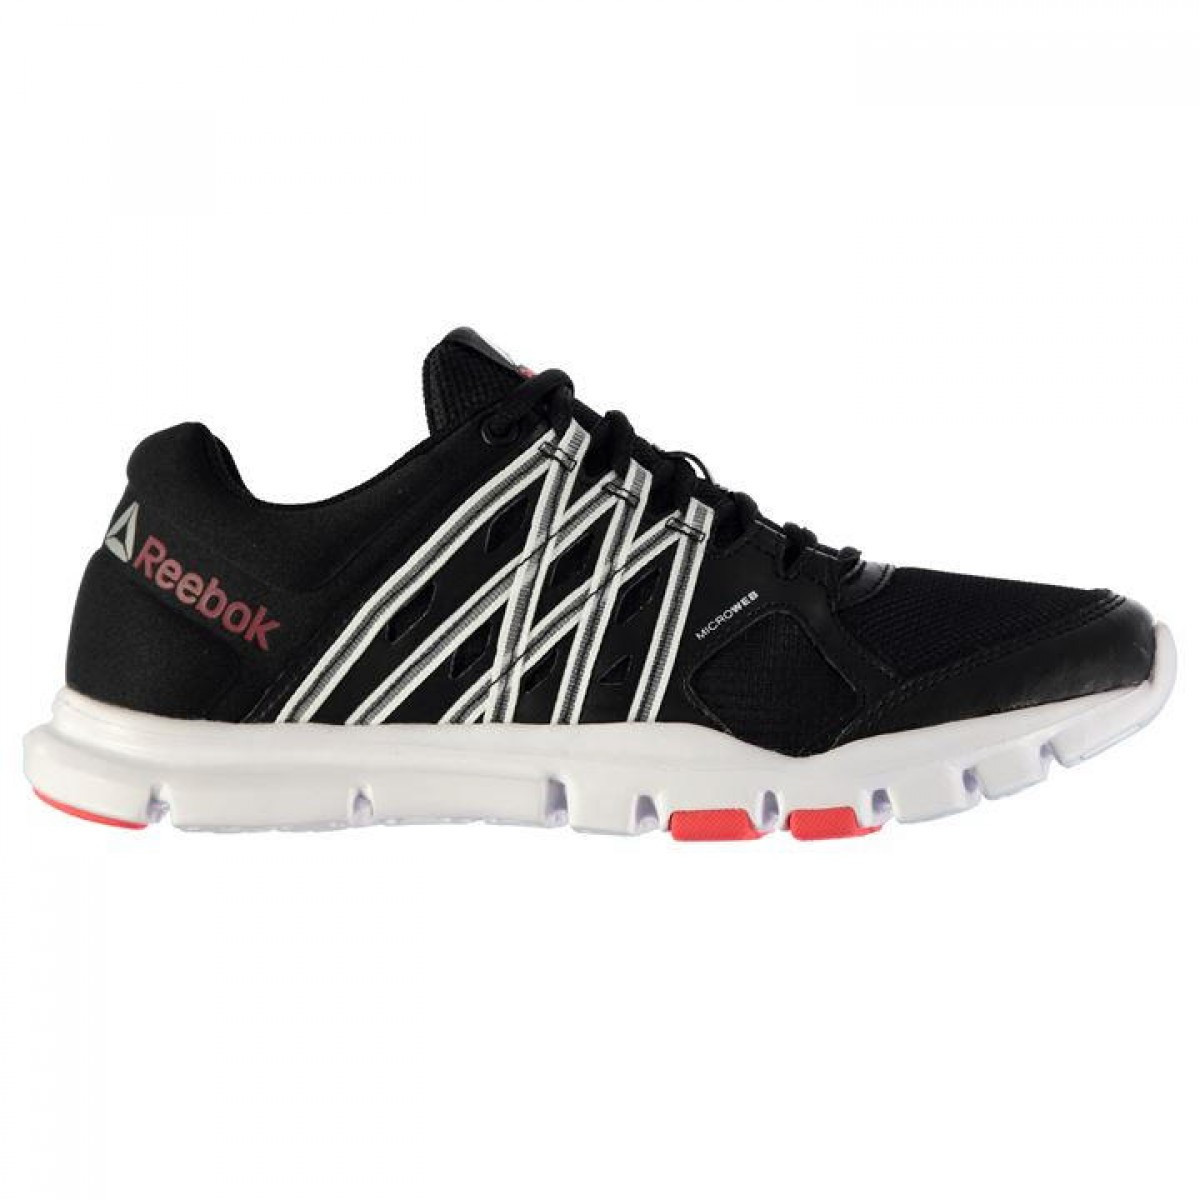 Кроссовки Reebok YourflexTrain Ladies Blk/Wht/Cherry - Оригинал, фото 1